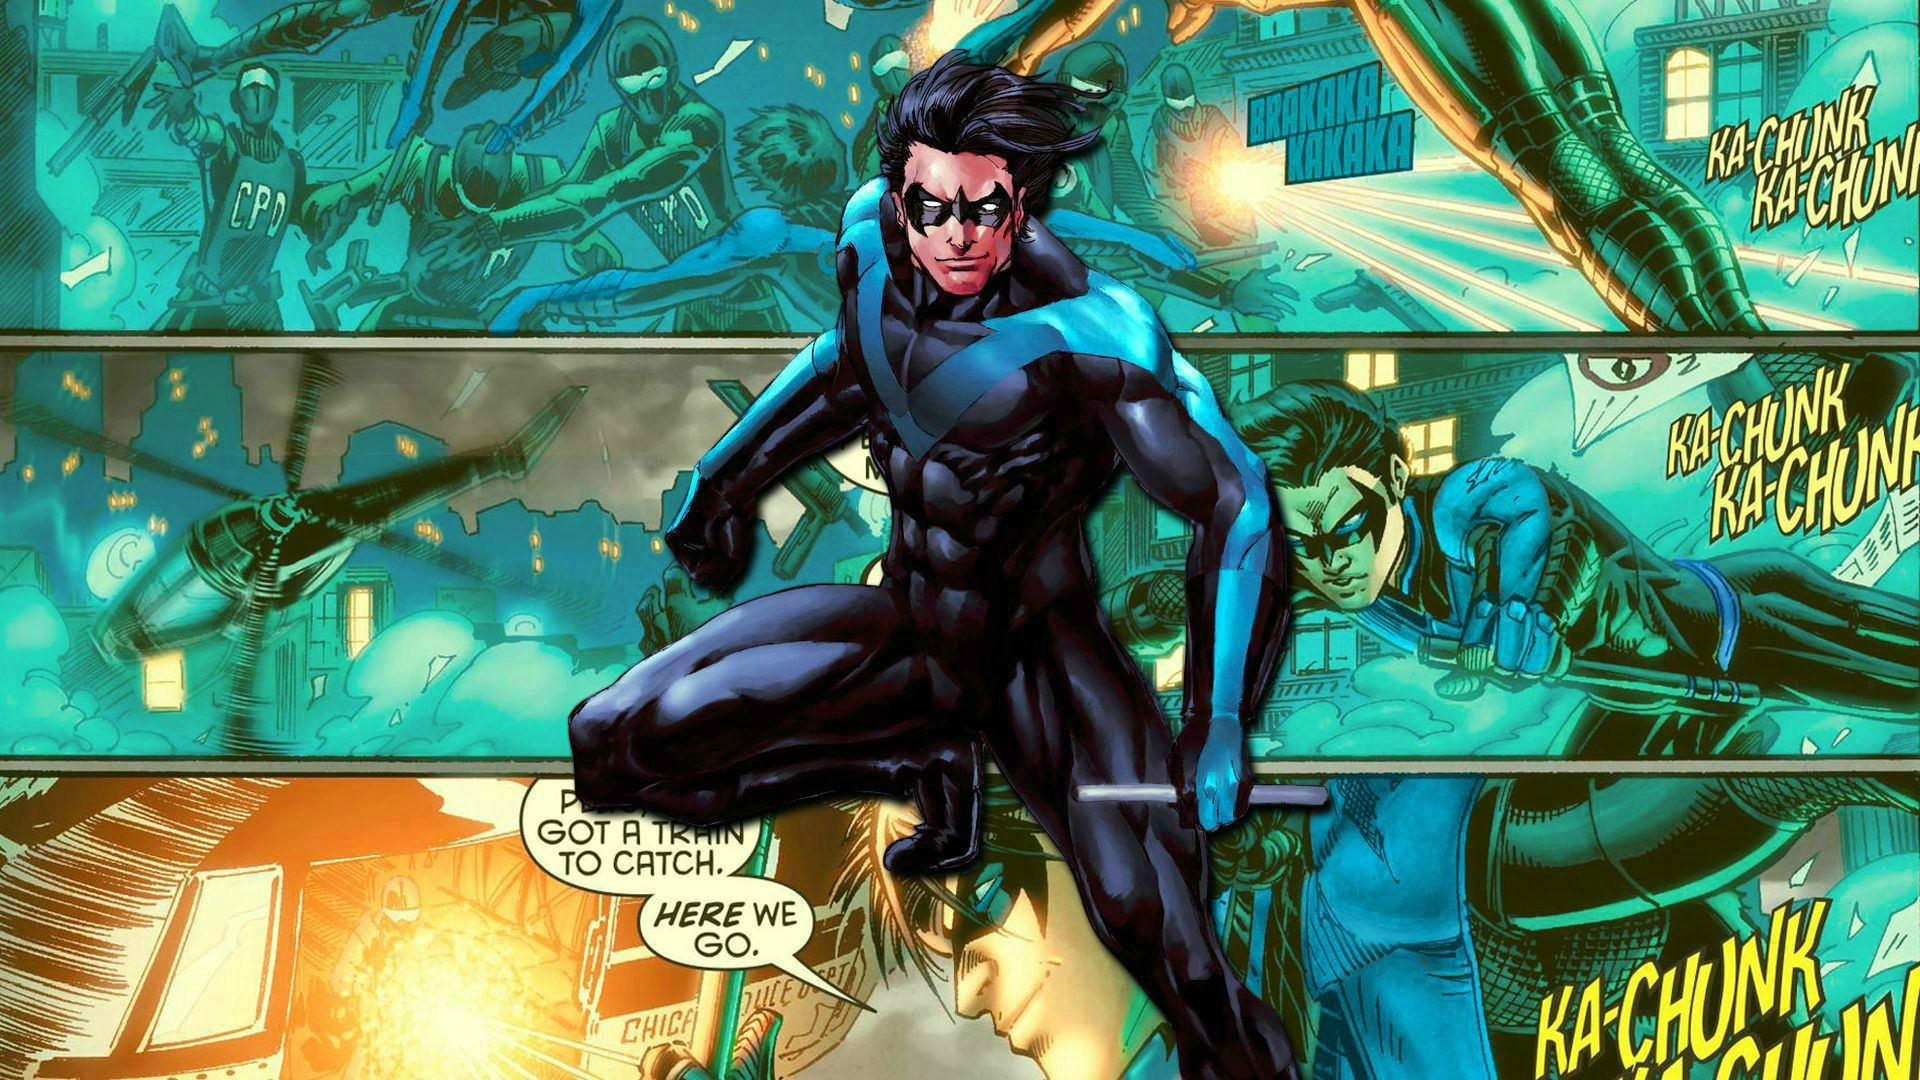 1920x1080 Nightwing HD Wallpapers Backgrounds Wallpaper Page | HD Wallpapers |  Pinterest | Nightwing, Hd wallpaper and Wallpaper